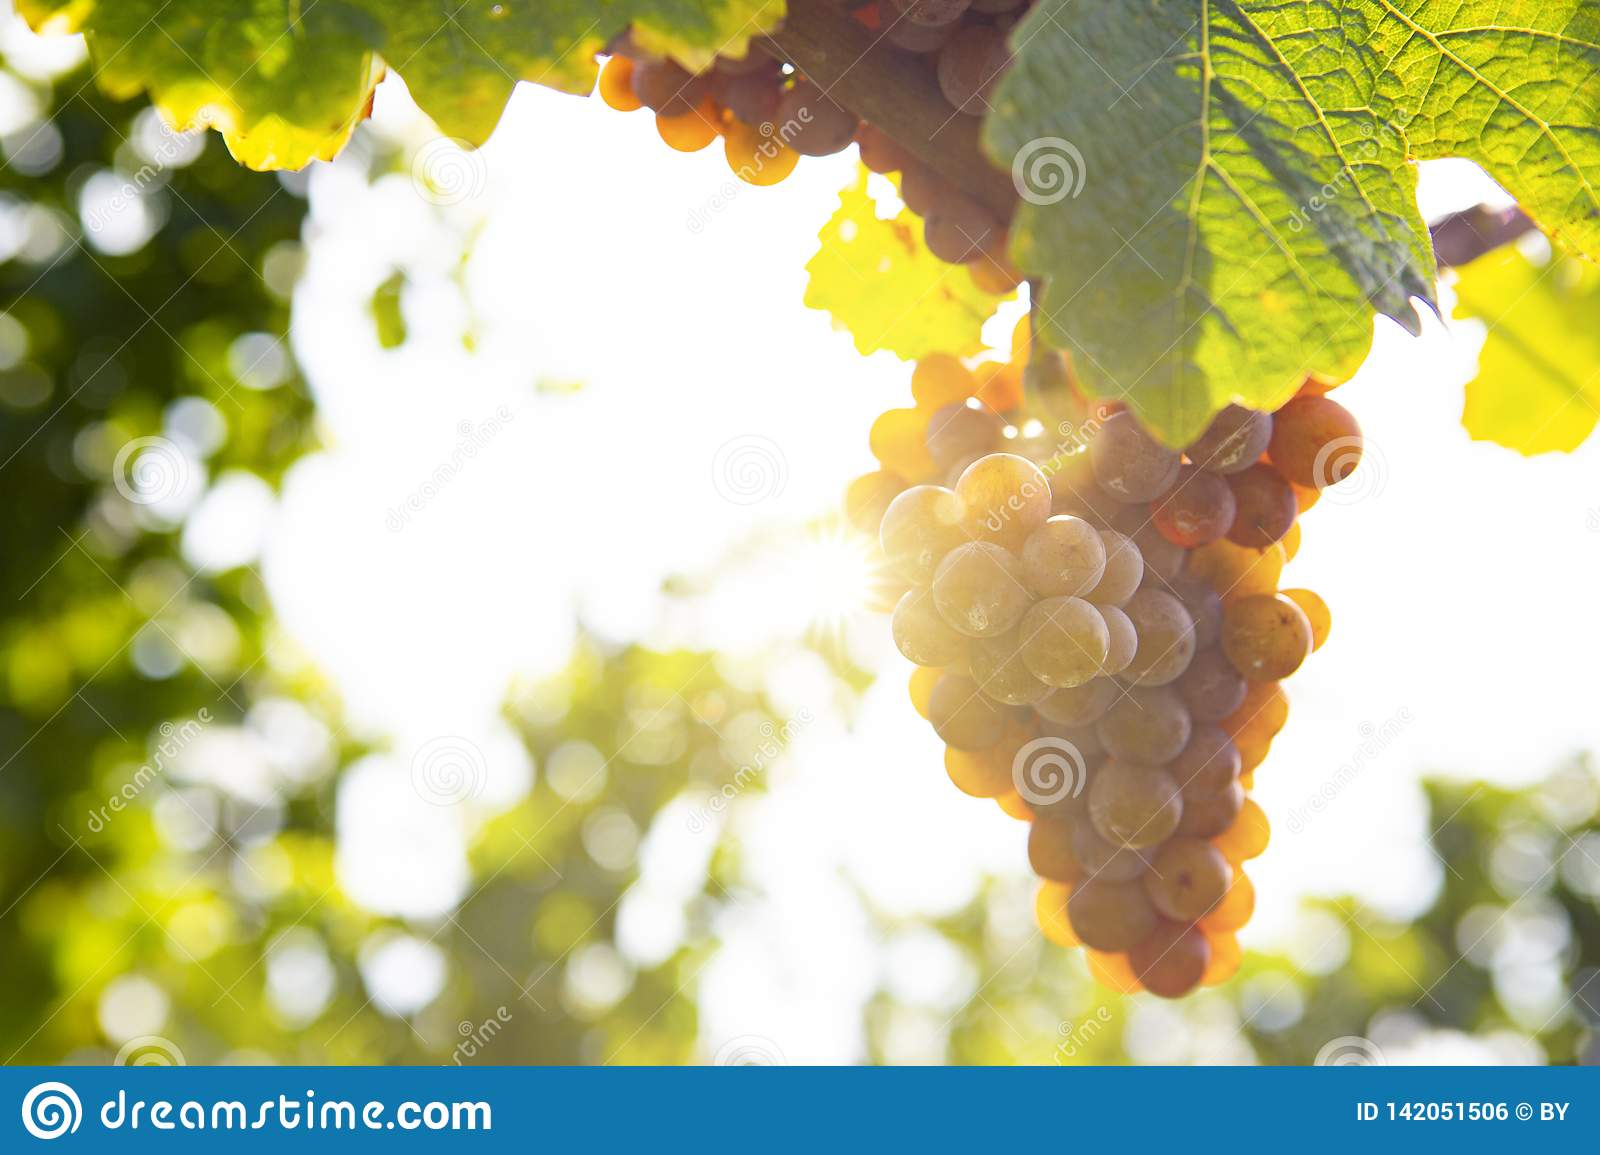 Grapes in Sunlight